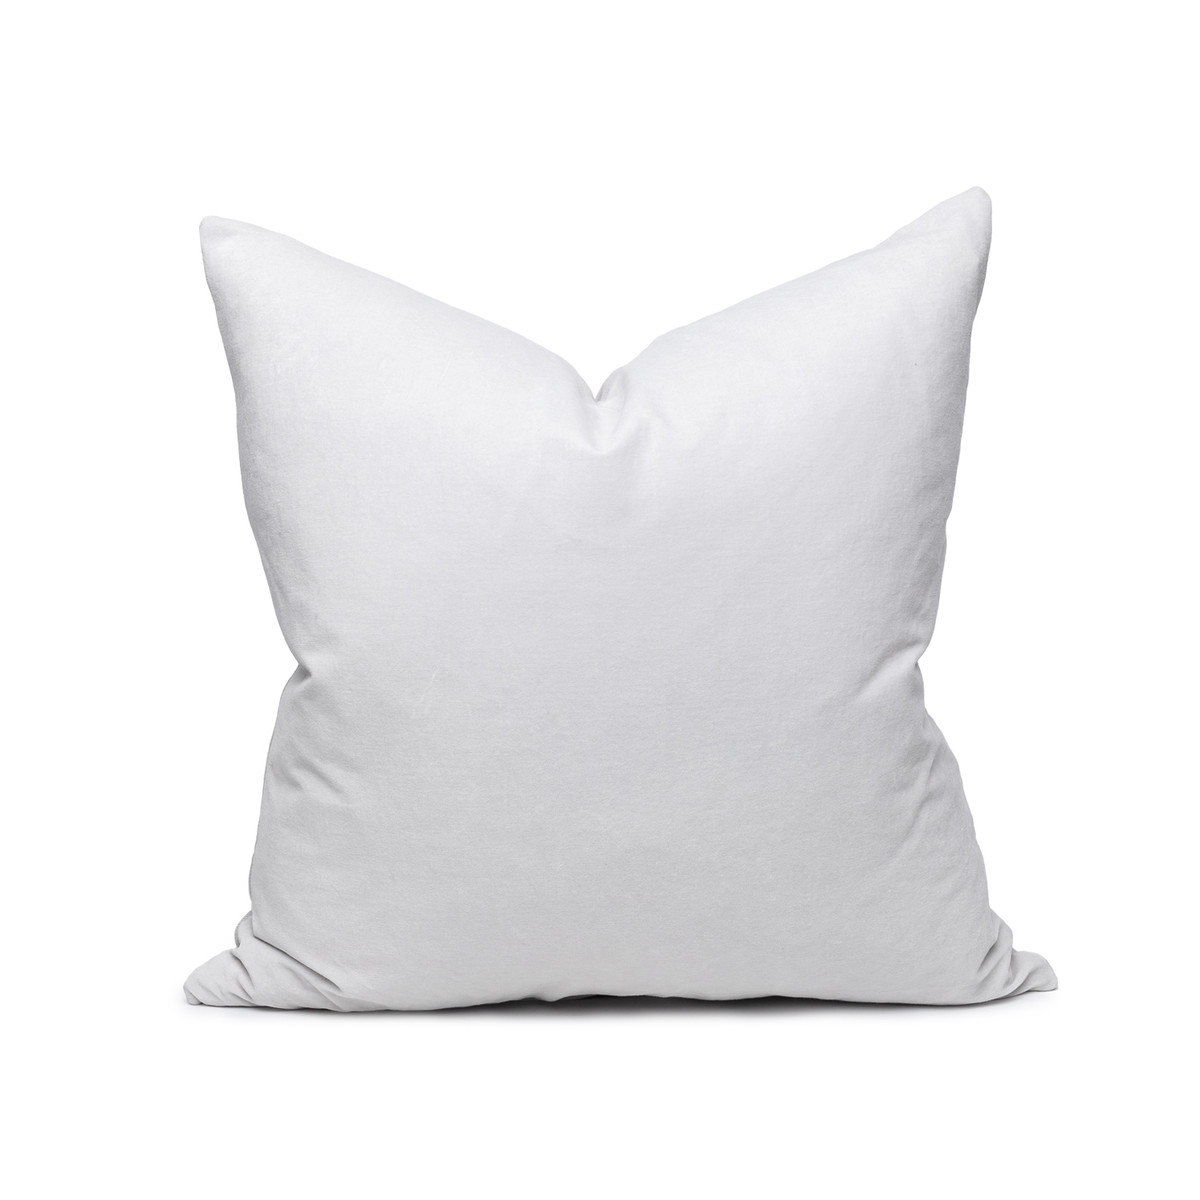 Sophie Pearl Gray velvet decorative pillow - front